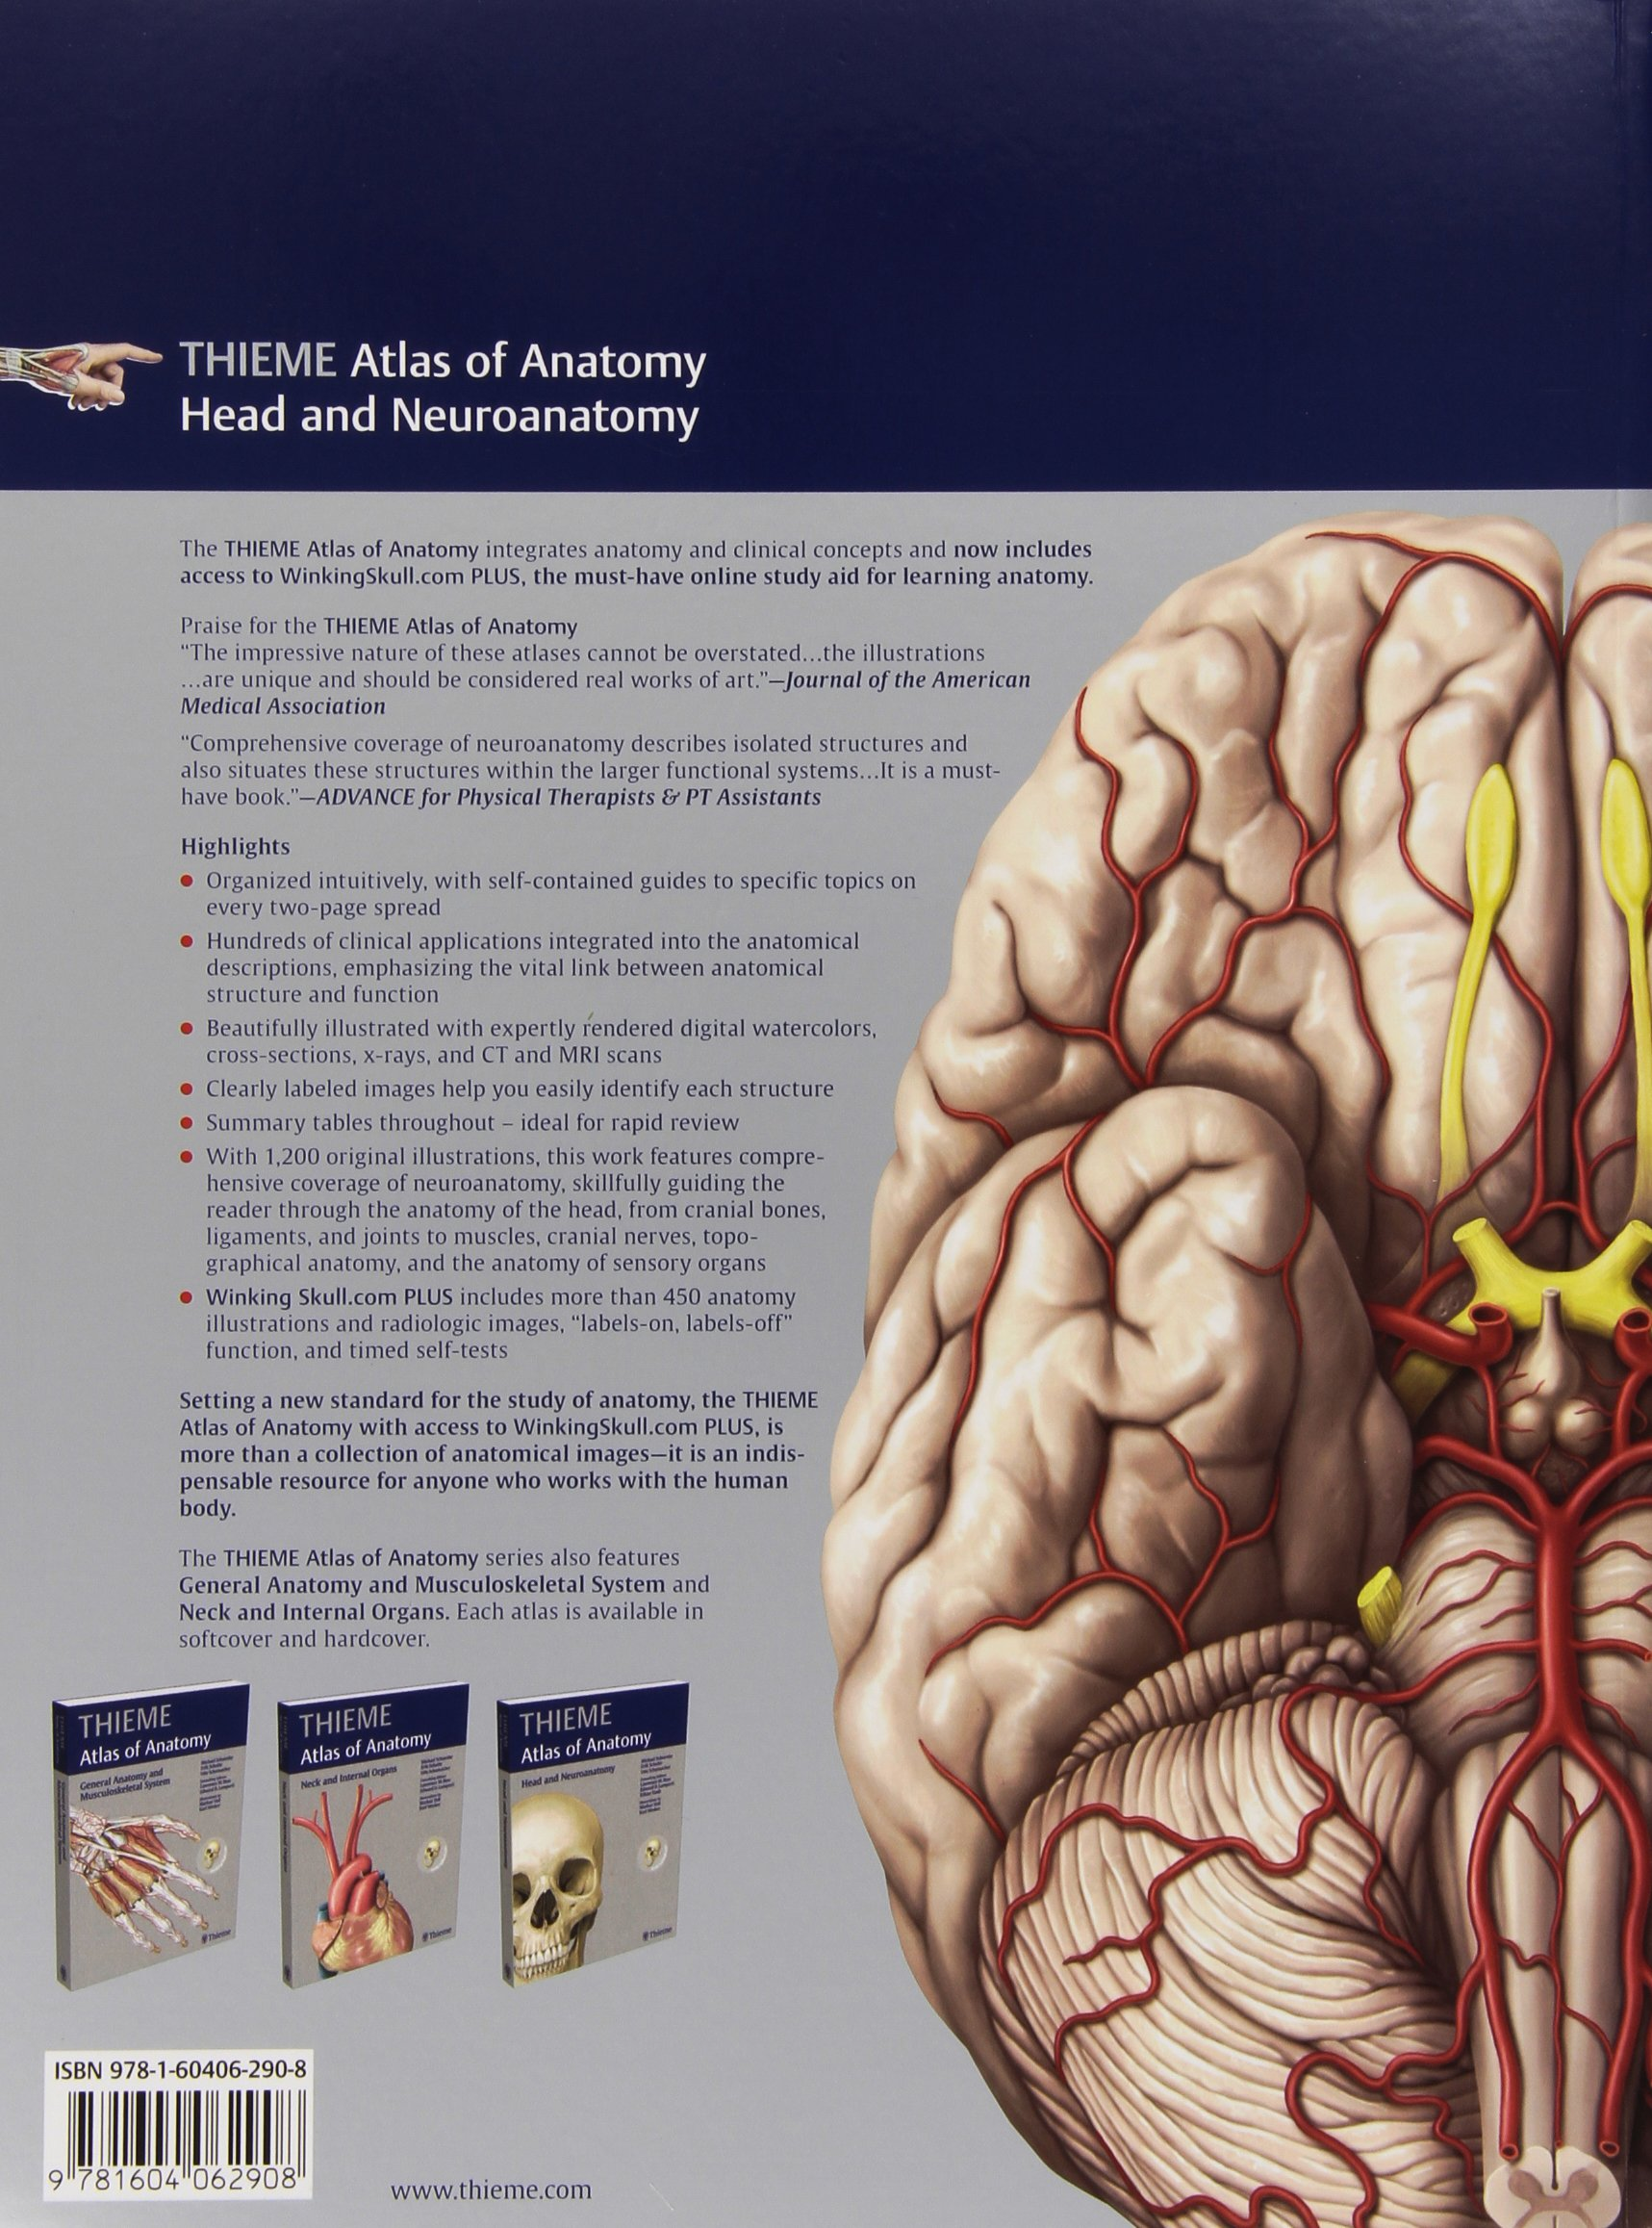 Head And Neuroanatomy Thieme Atlas Of Anatomy Amazon Erik